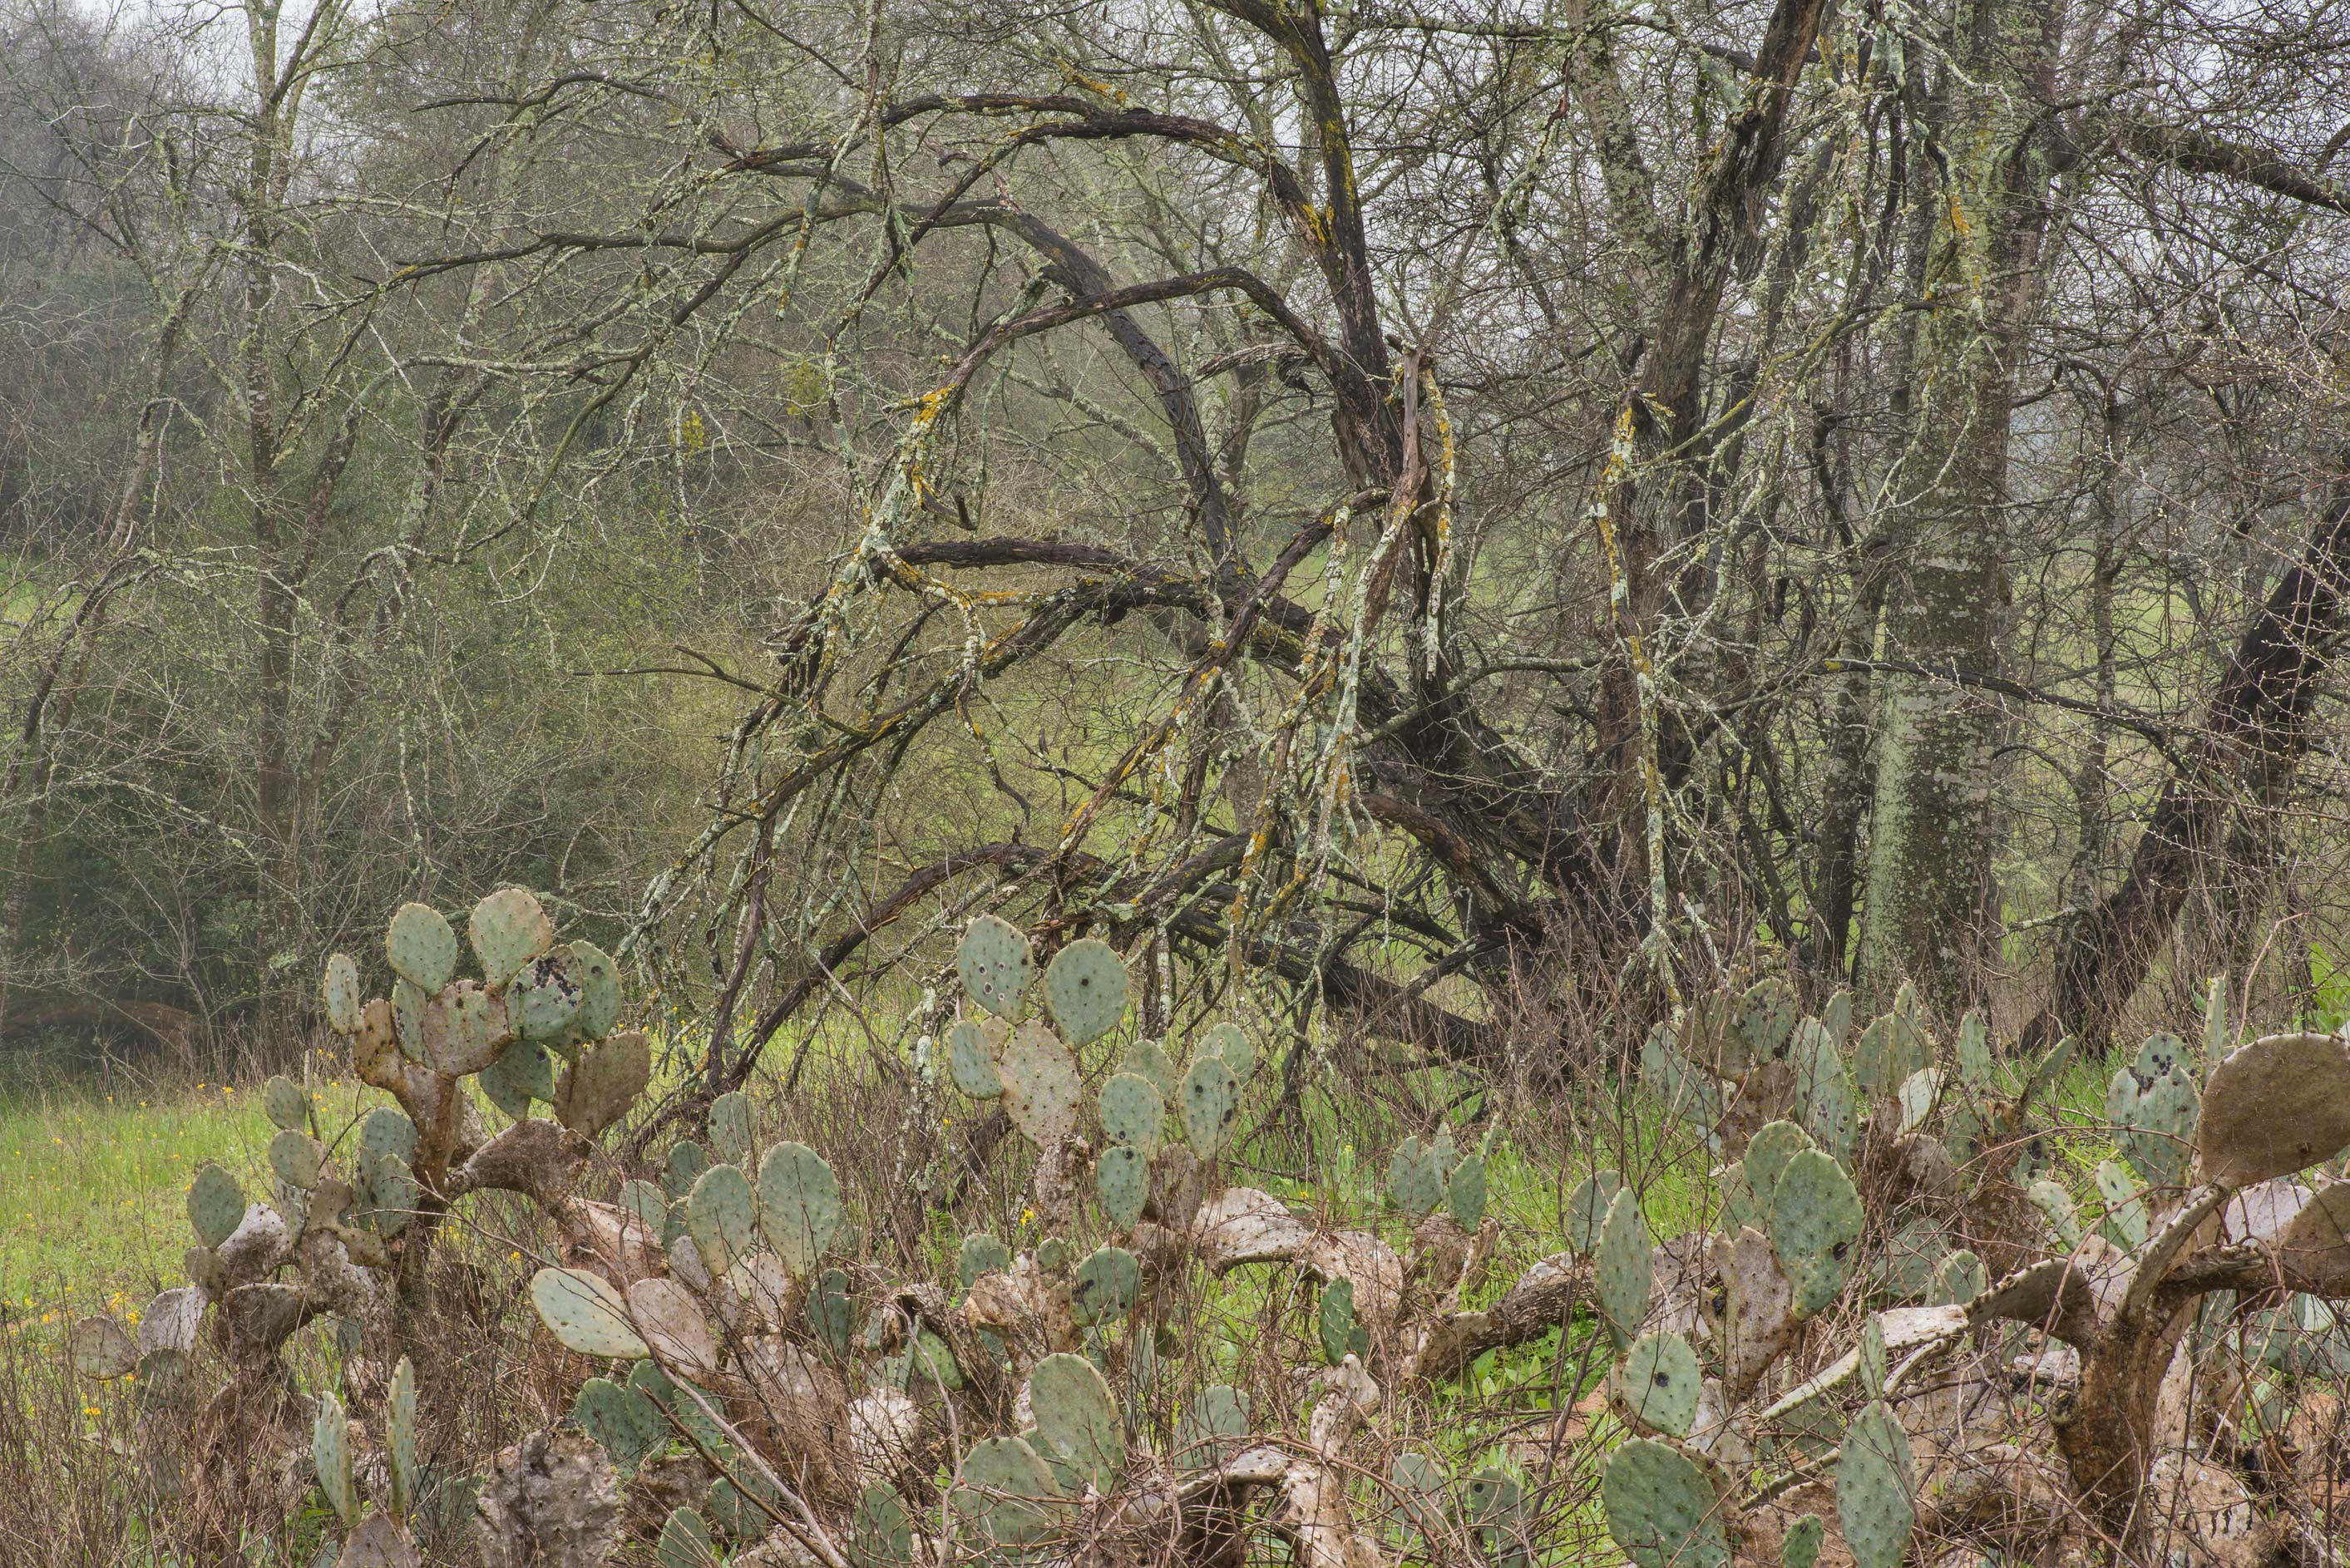 Prickly pear cacti and dry trees in Washington-on...State Historic Site. Washington, Texas